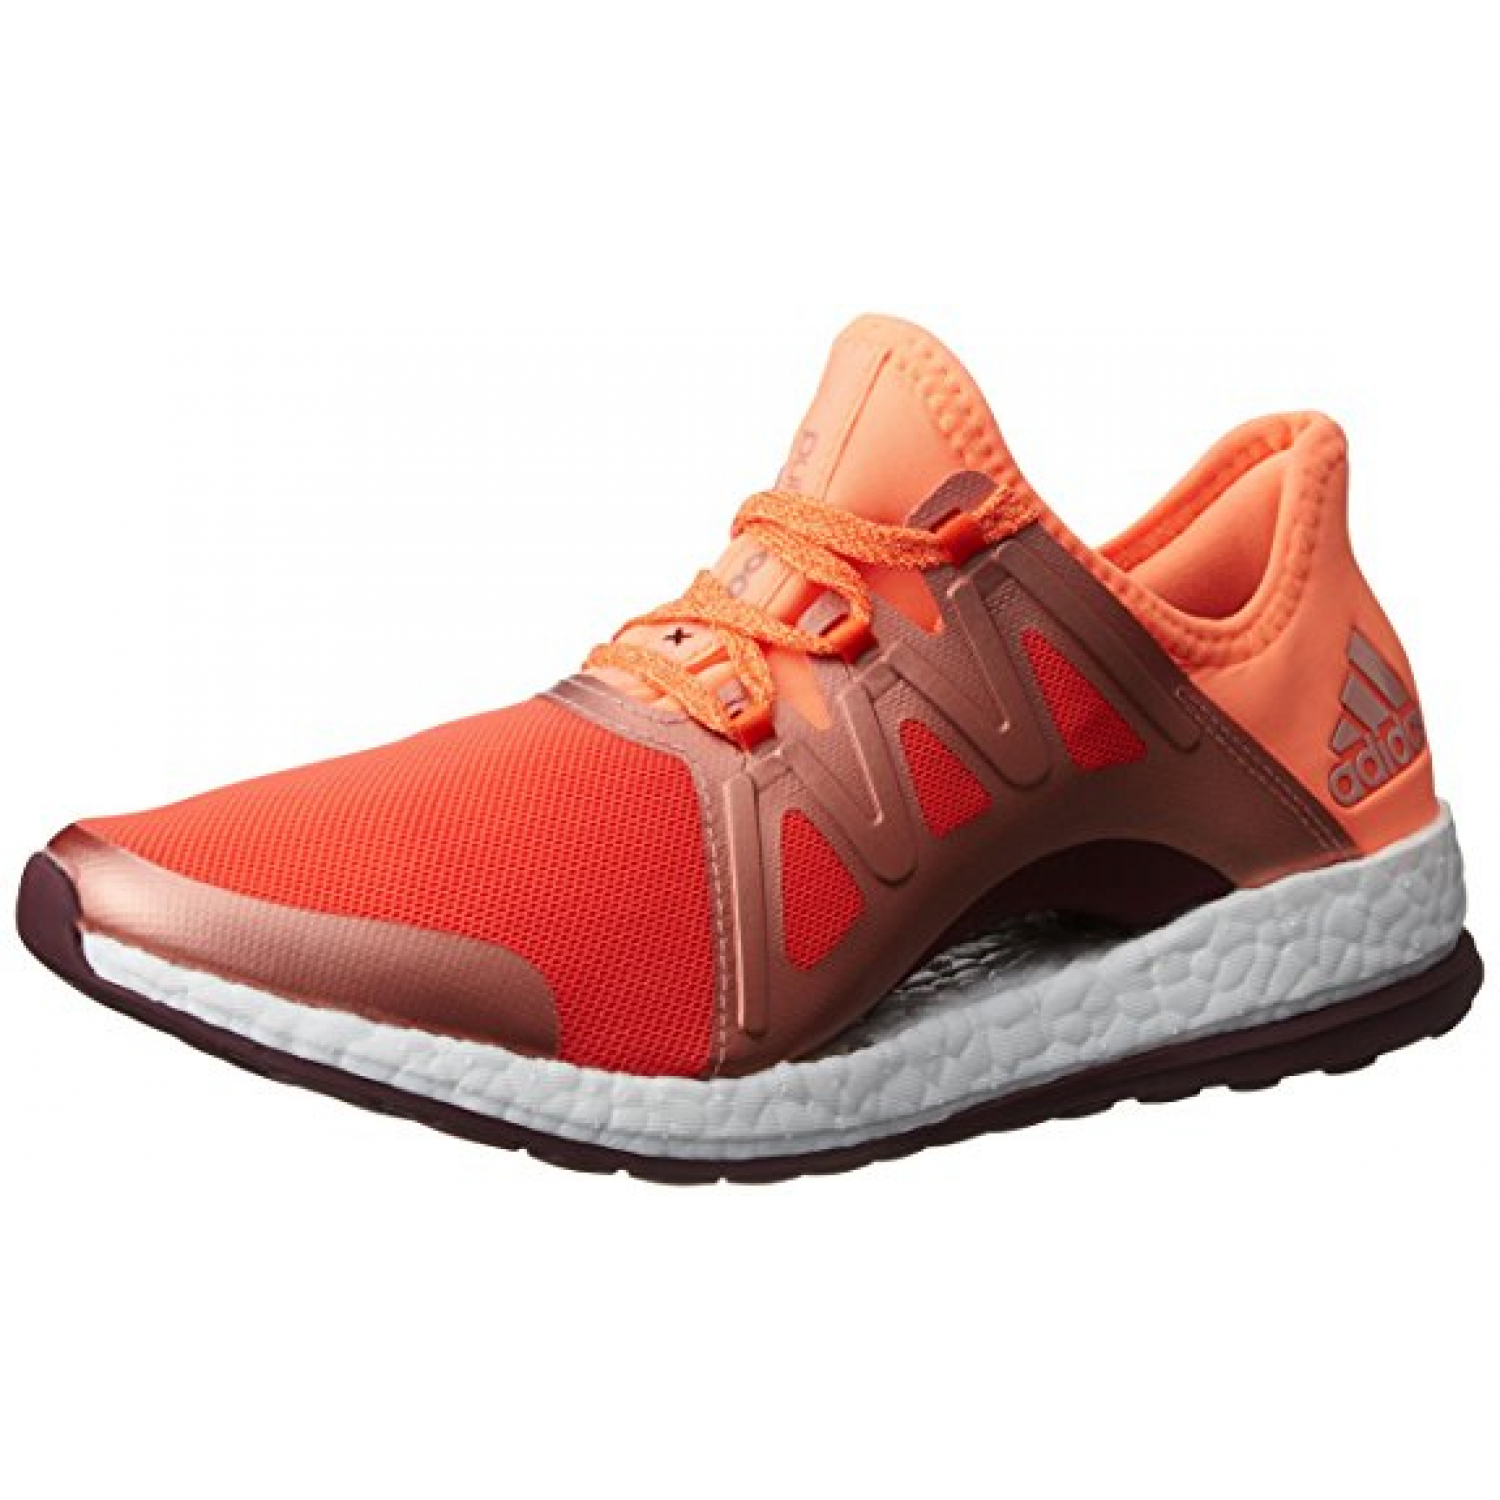 Adidas Pure Boost Xpose Orange Laufschuhe EU Gr. 38 (5)